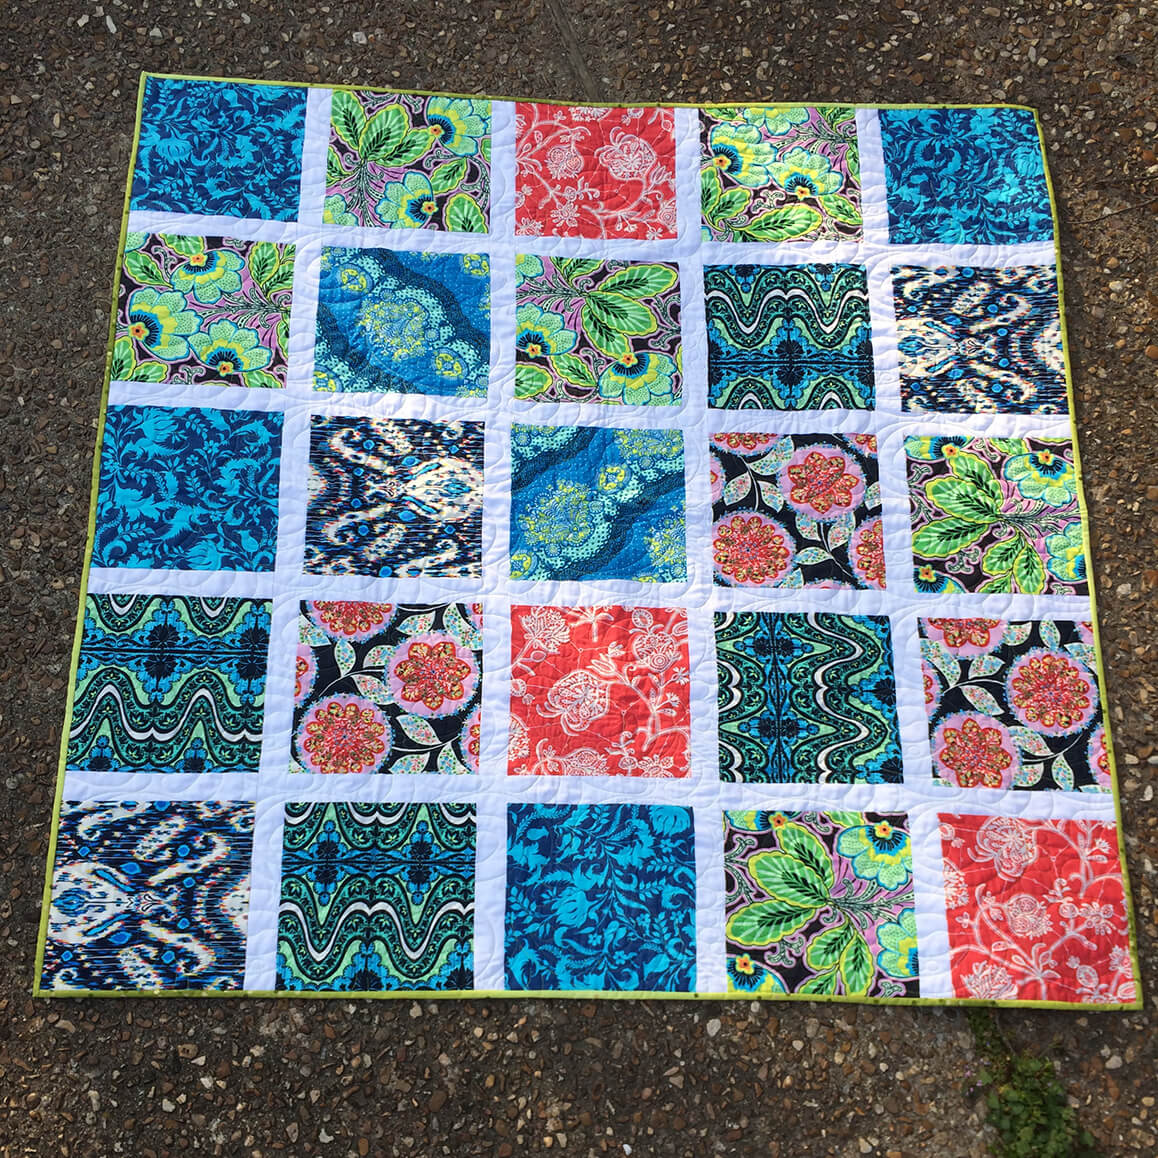 Completed quilt using Amy Butler fabrics